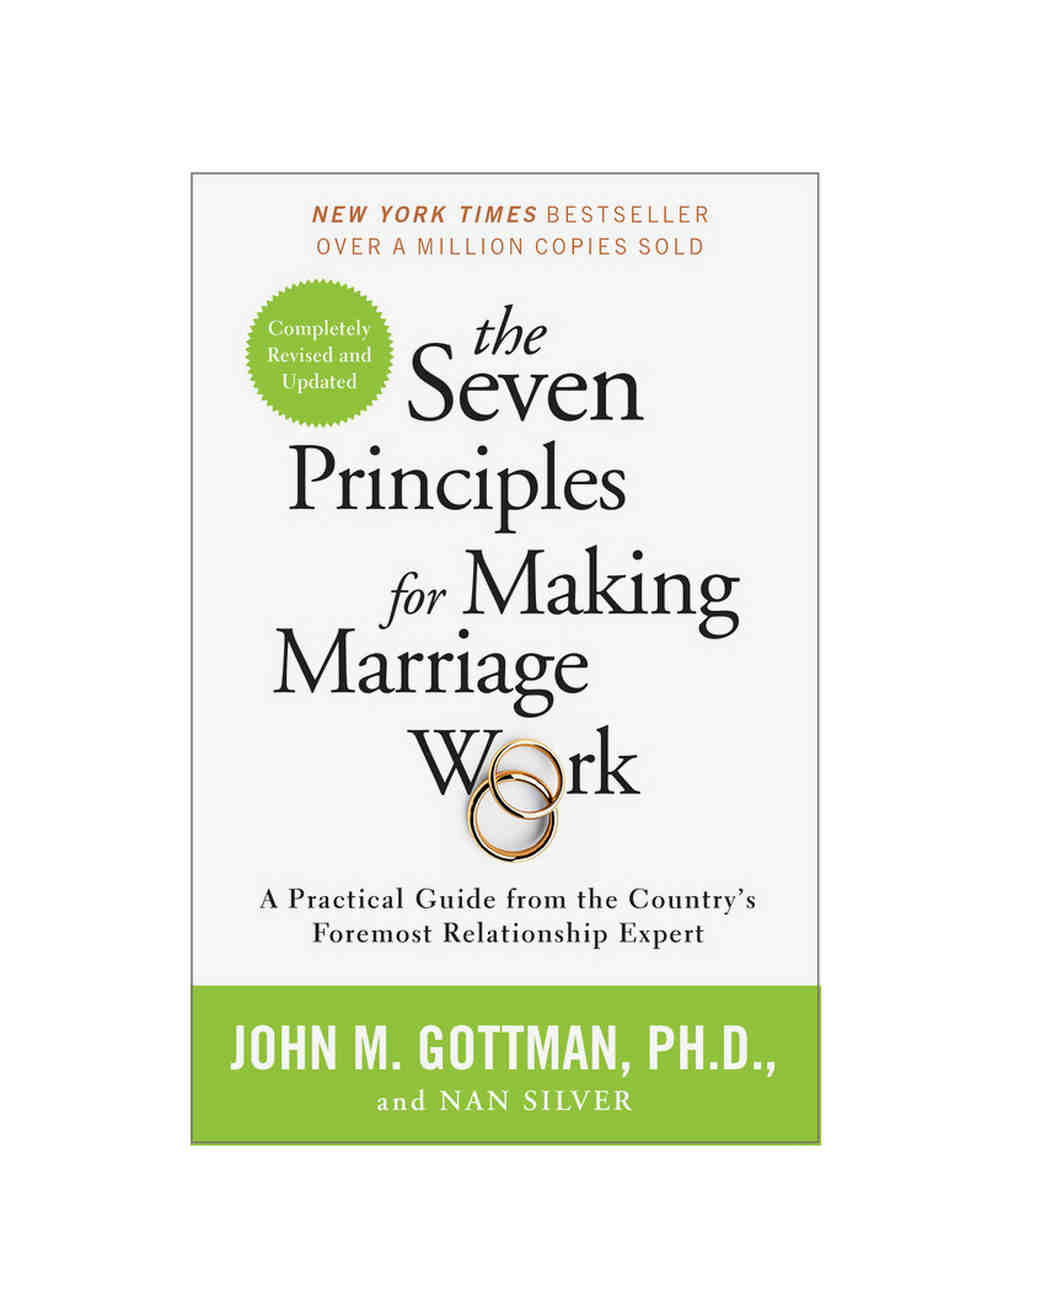 books-for-newlyweds-john-gottman-the-seven-principles-for-making-marriage-work-0415.jpg